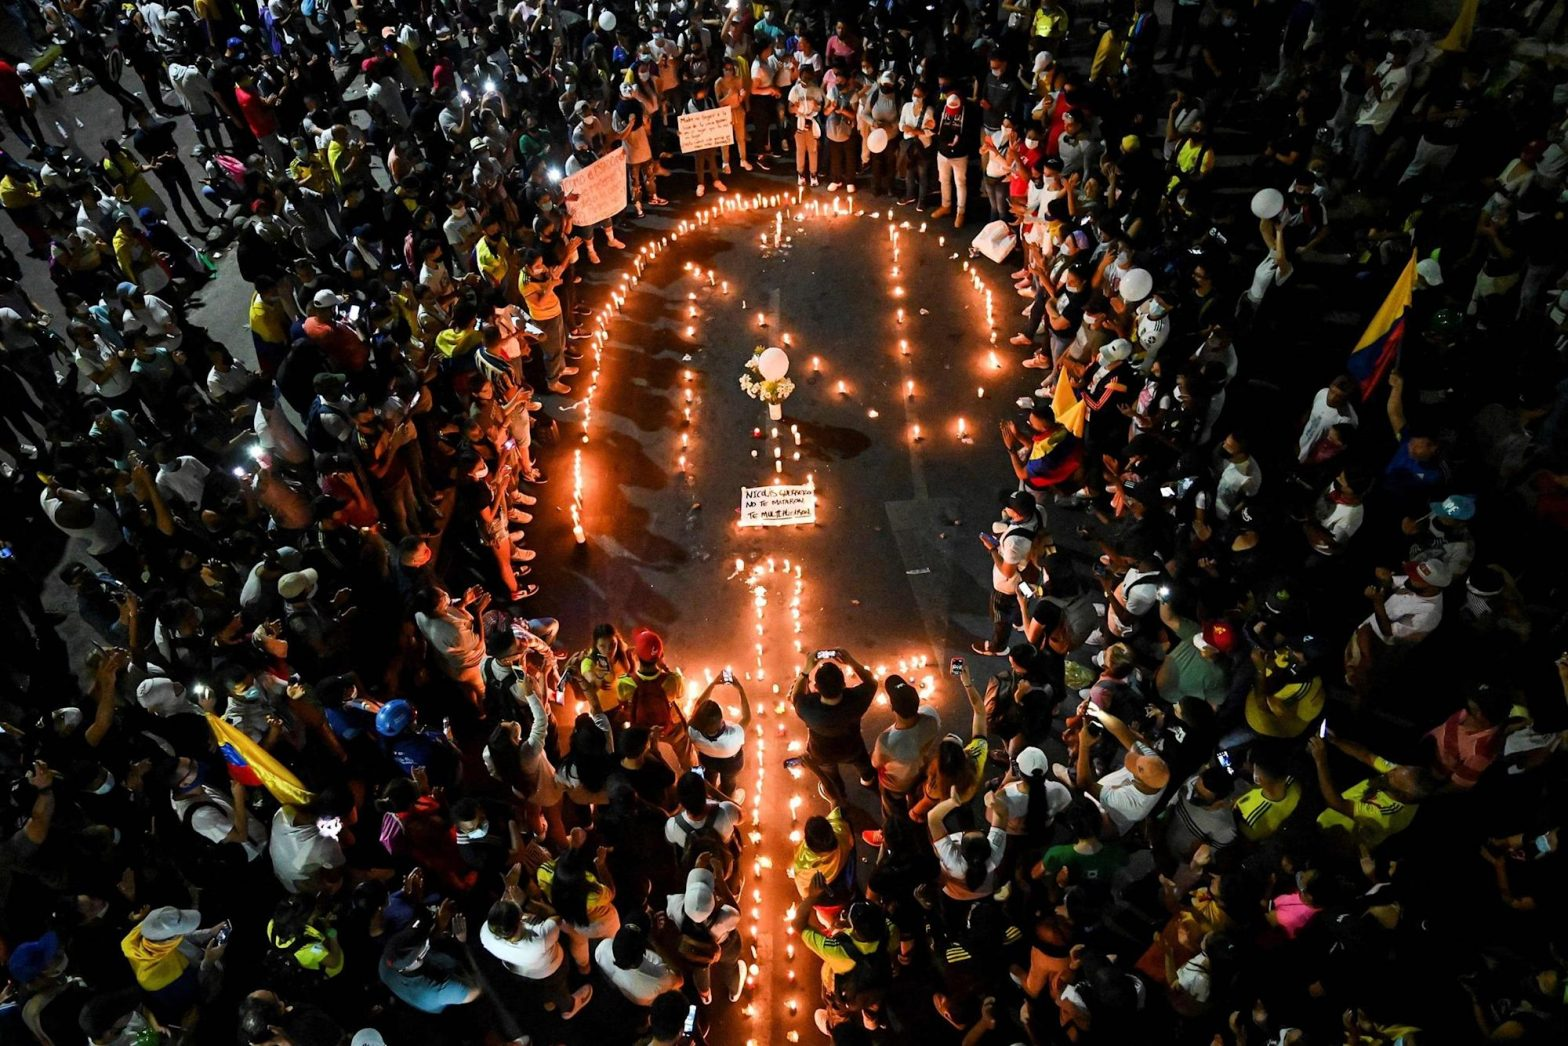 celebrities,-international-groups-call-attention-to-colombia's-deadly-protests